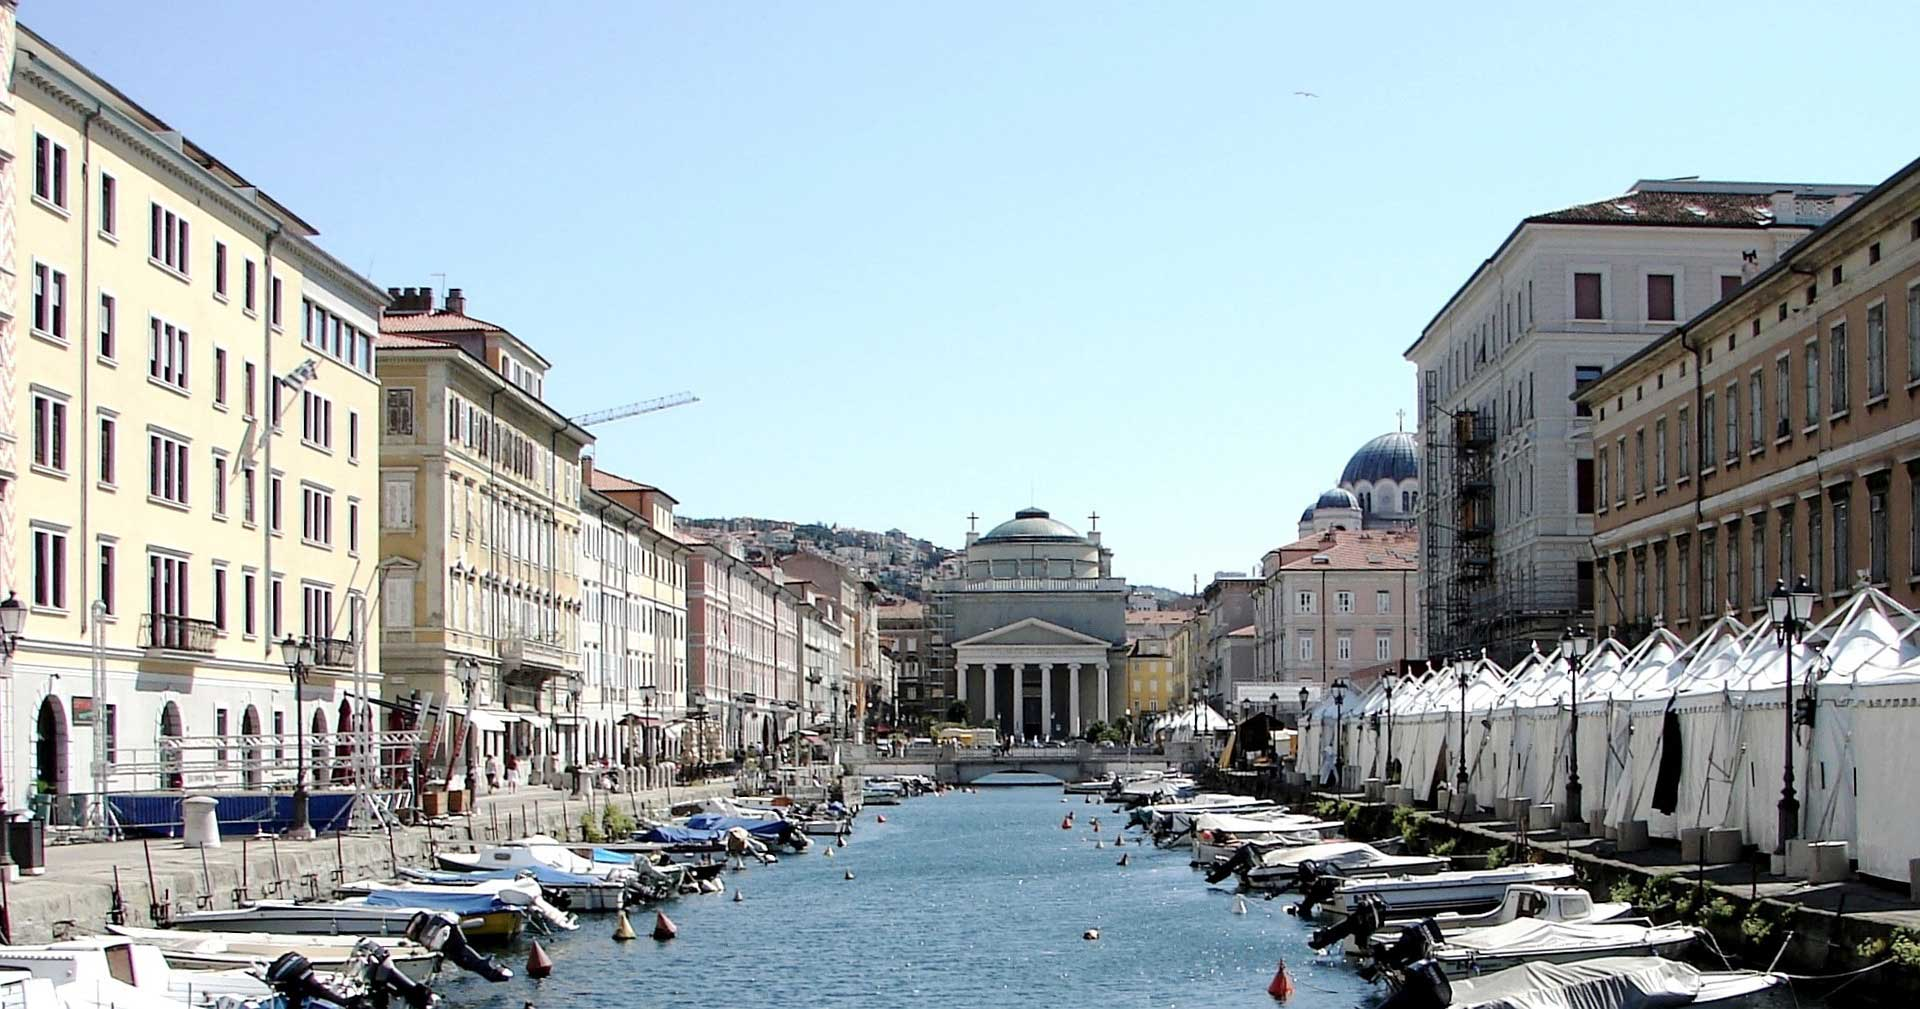 an Italian canal in Trieste lined with boats with a grand religious building at the end of it